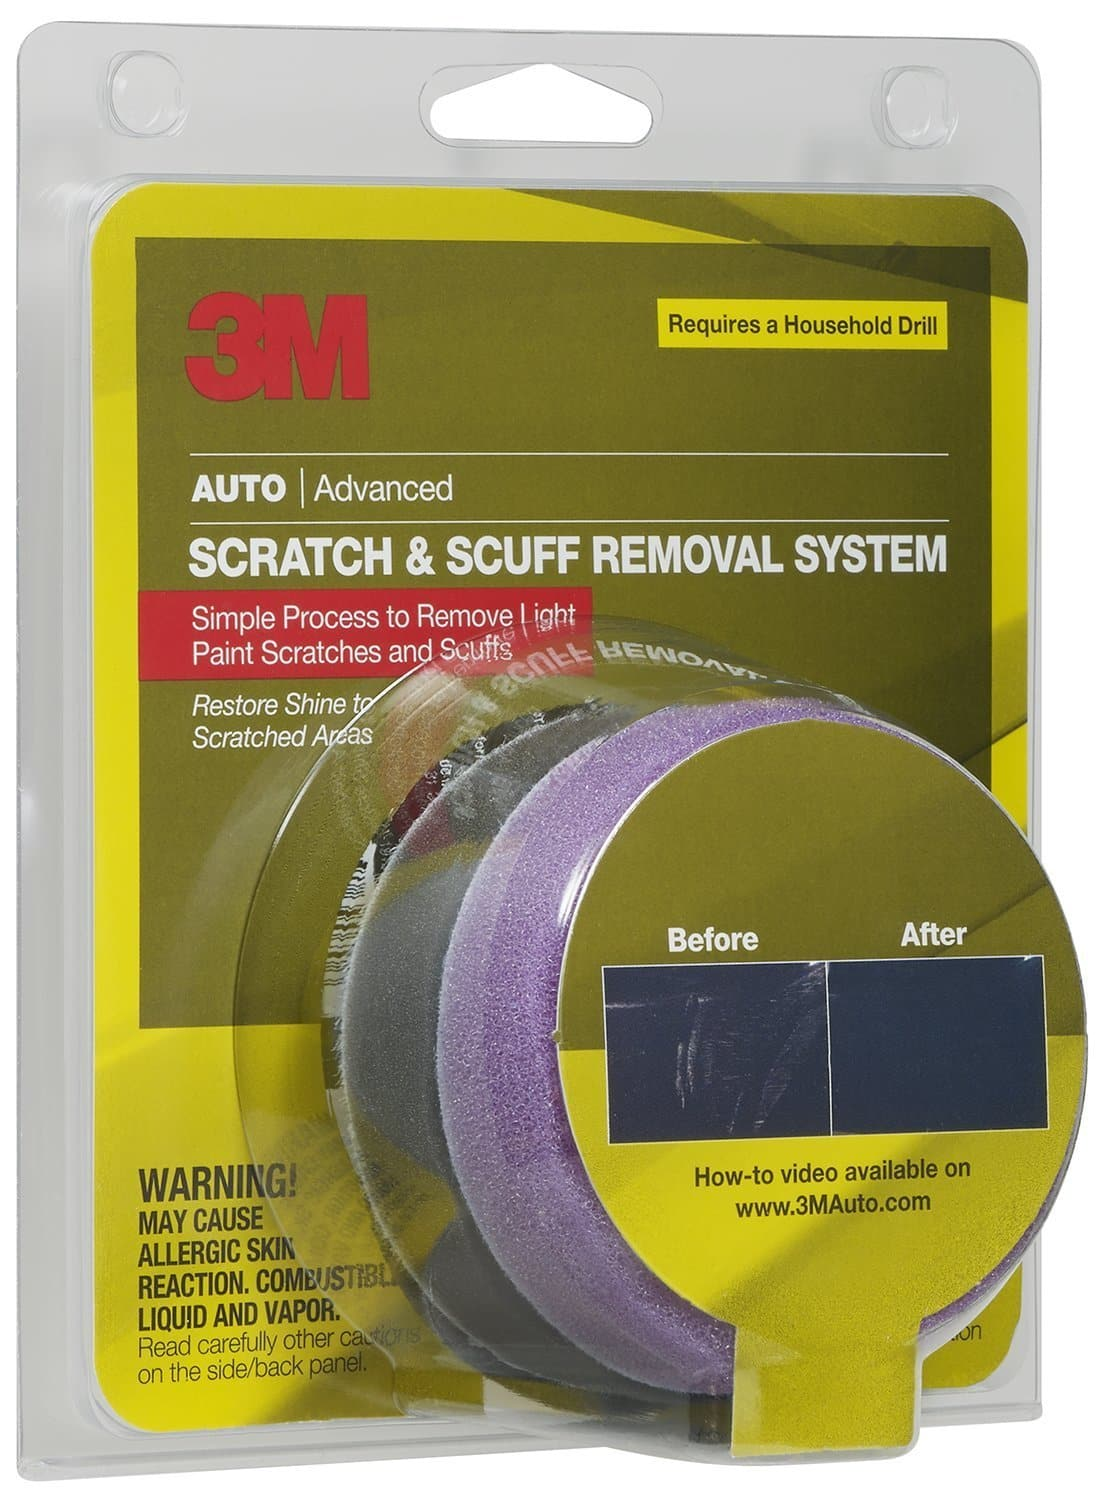 3M Auto Scratch & Scuff Removal System $5.44 w/ S&S + Free Shipping ~ Amazon